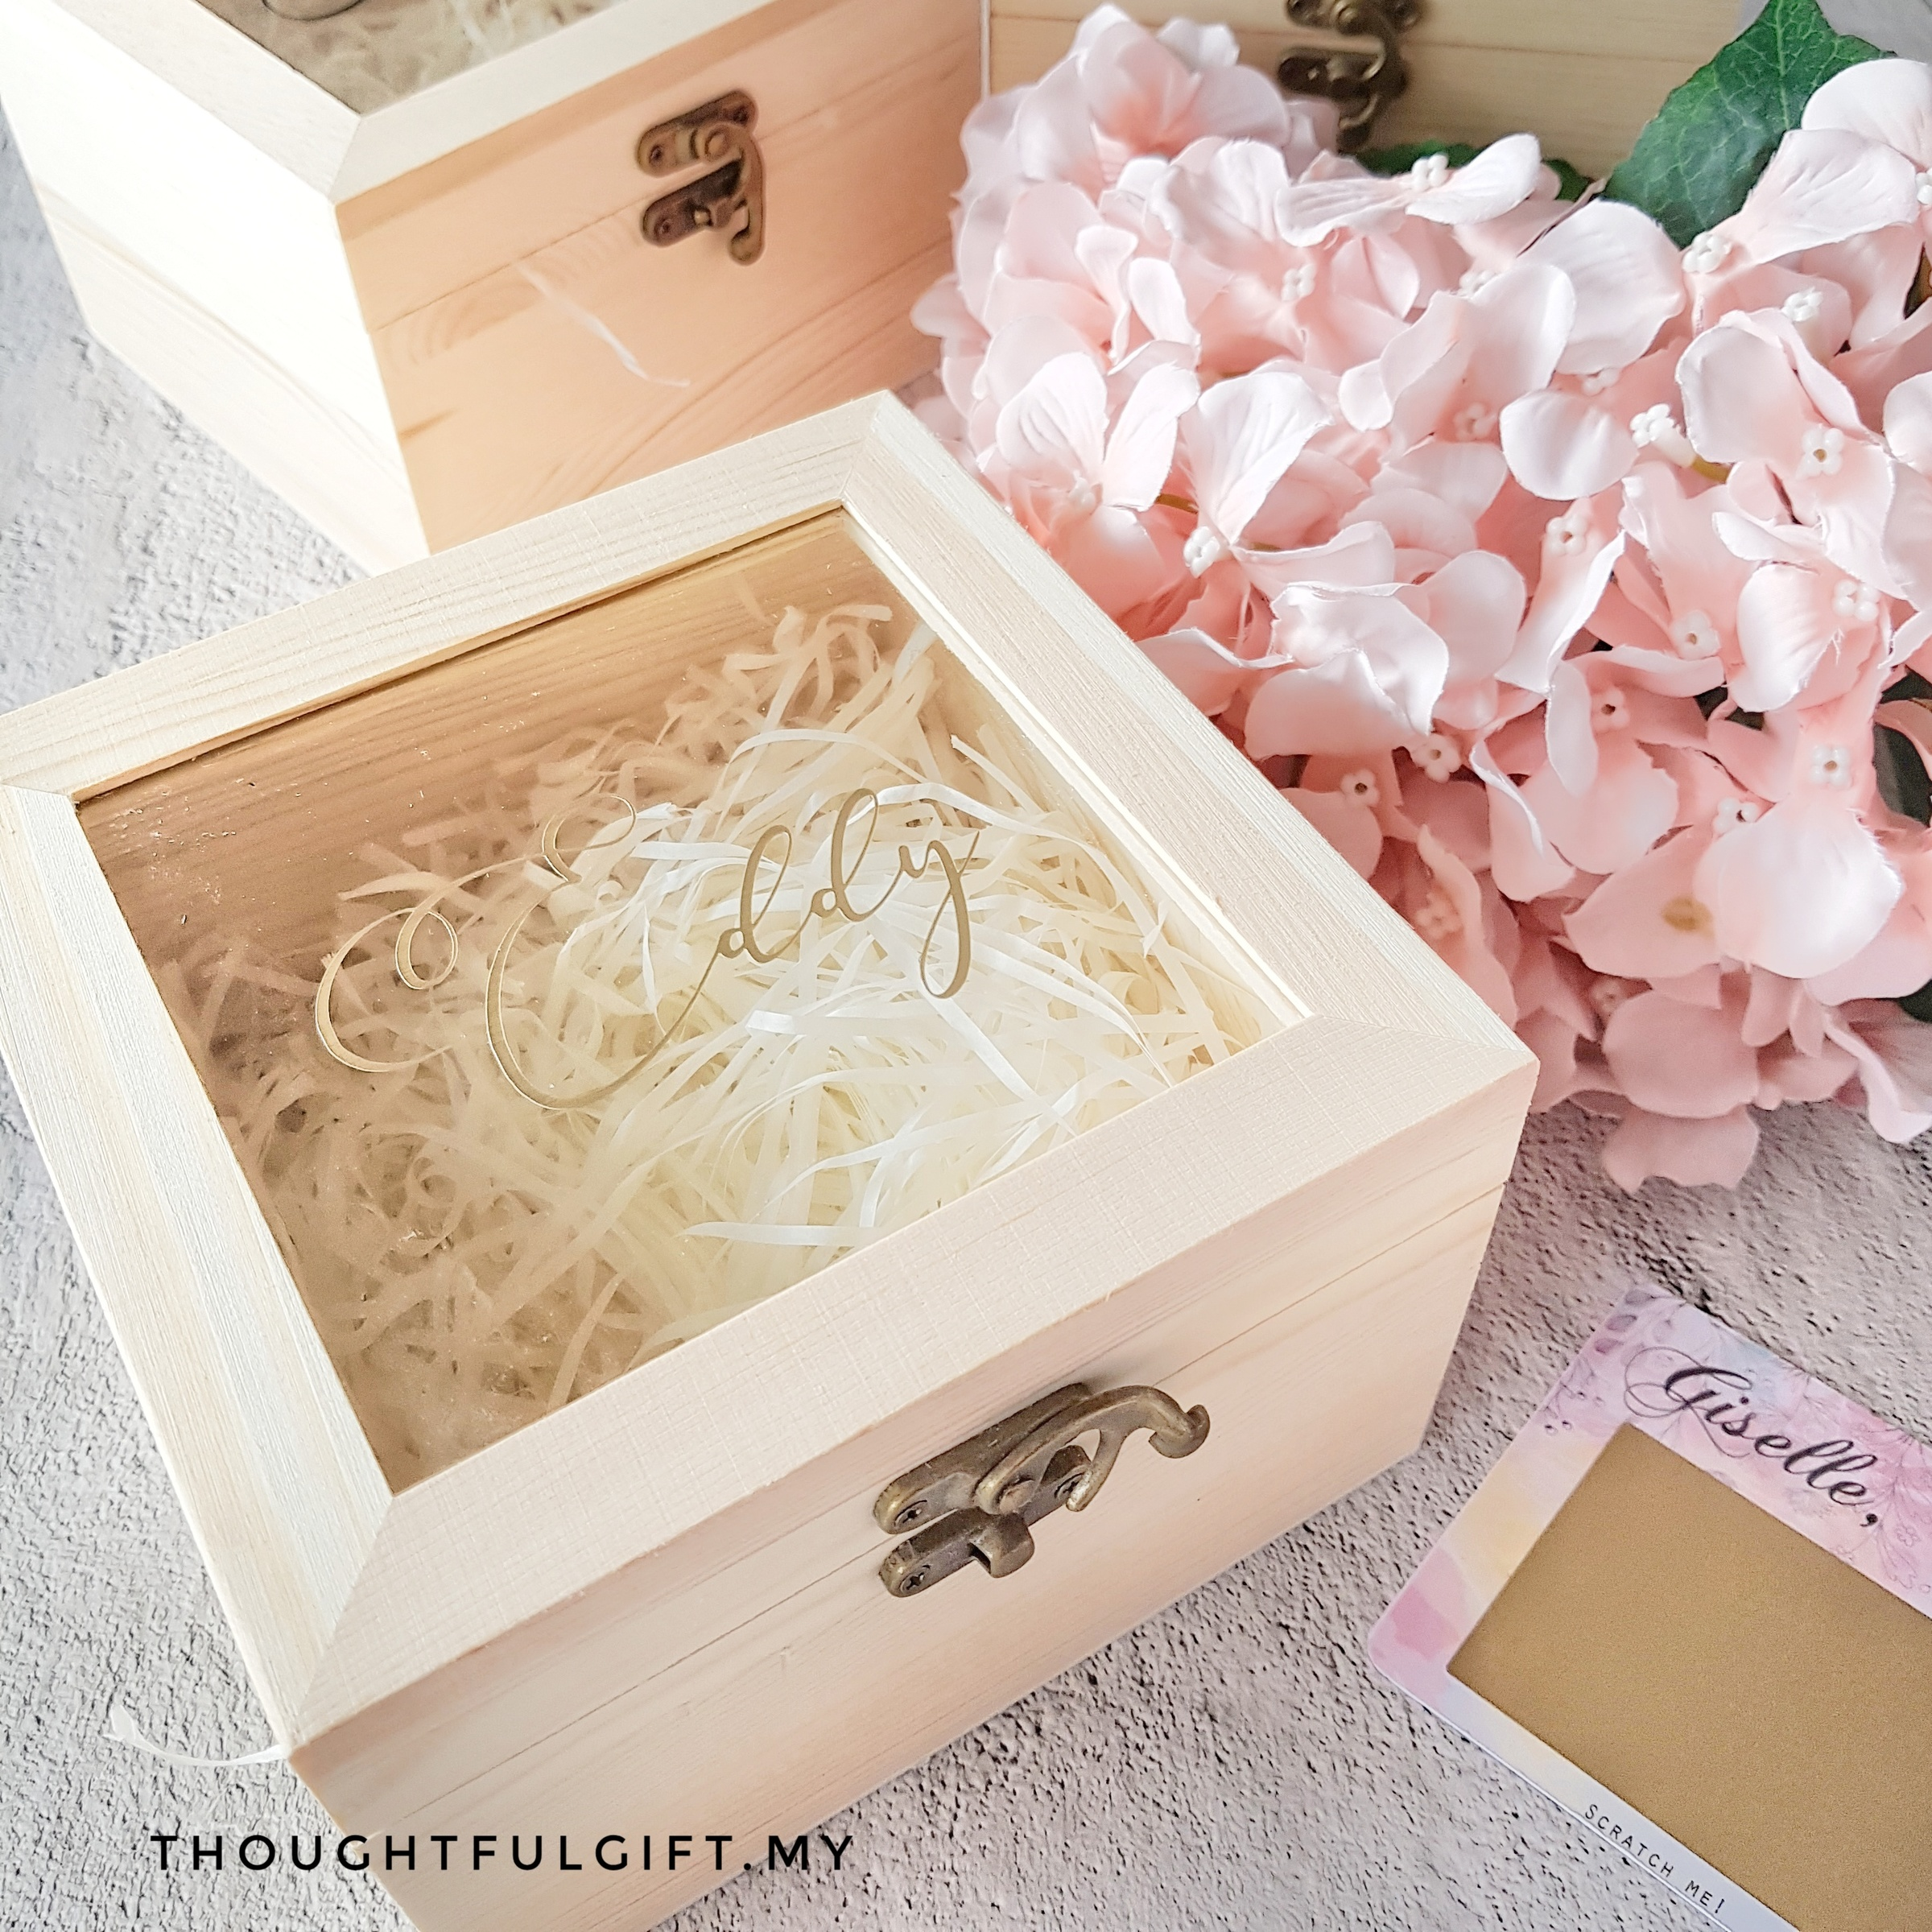 Thoughtfulgift | Our Collections - Personalized Storage Box/Case